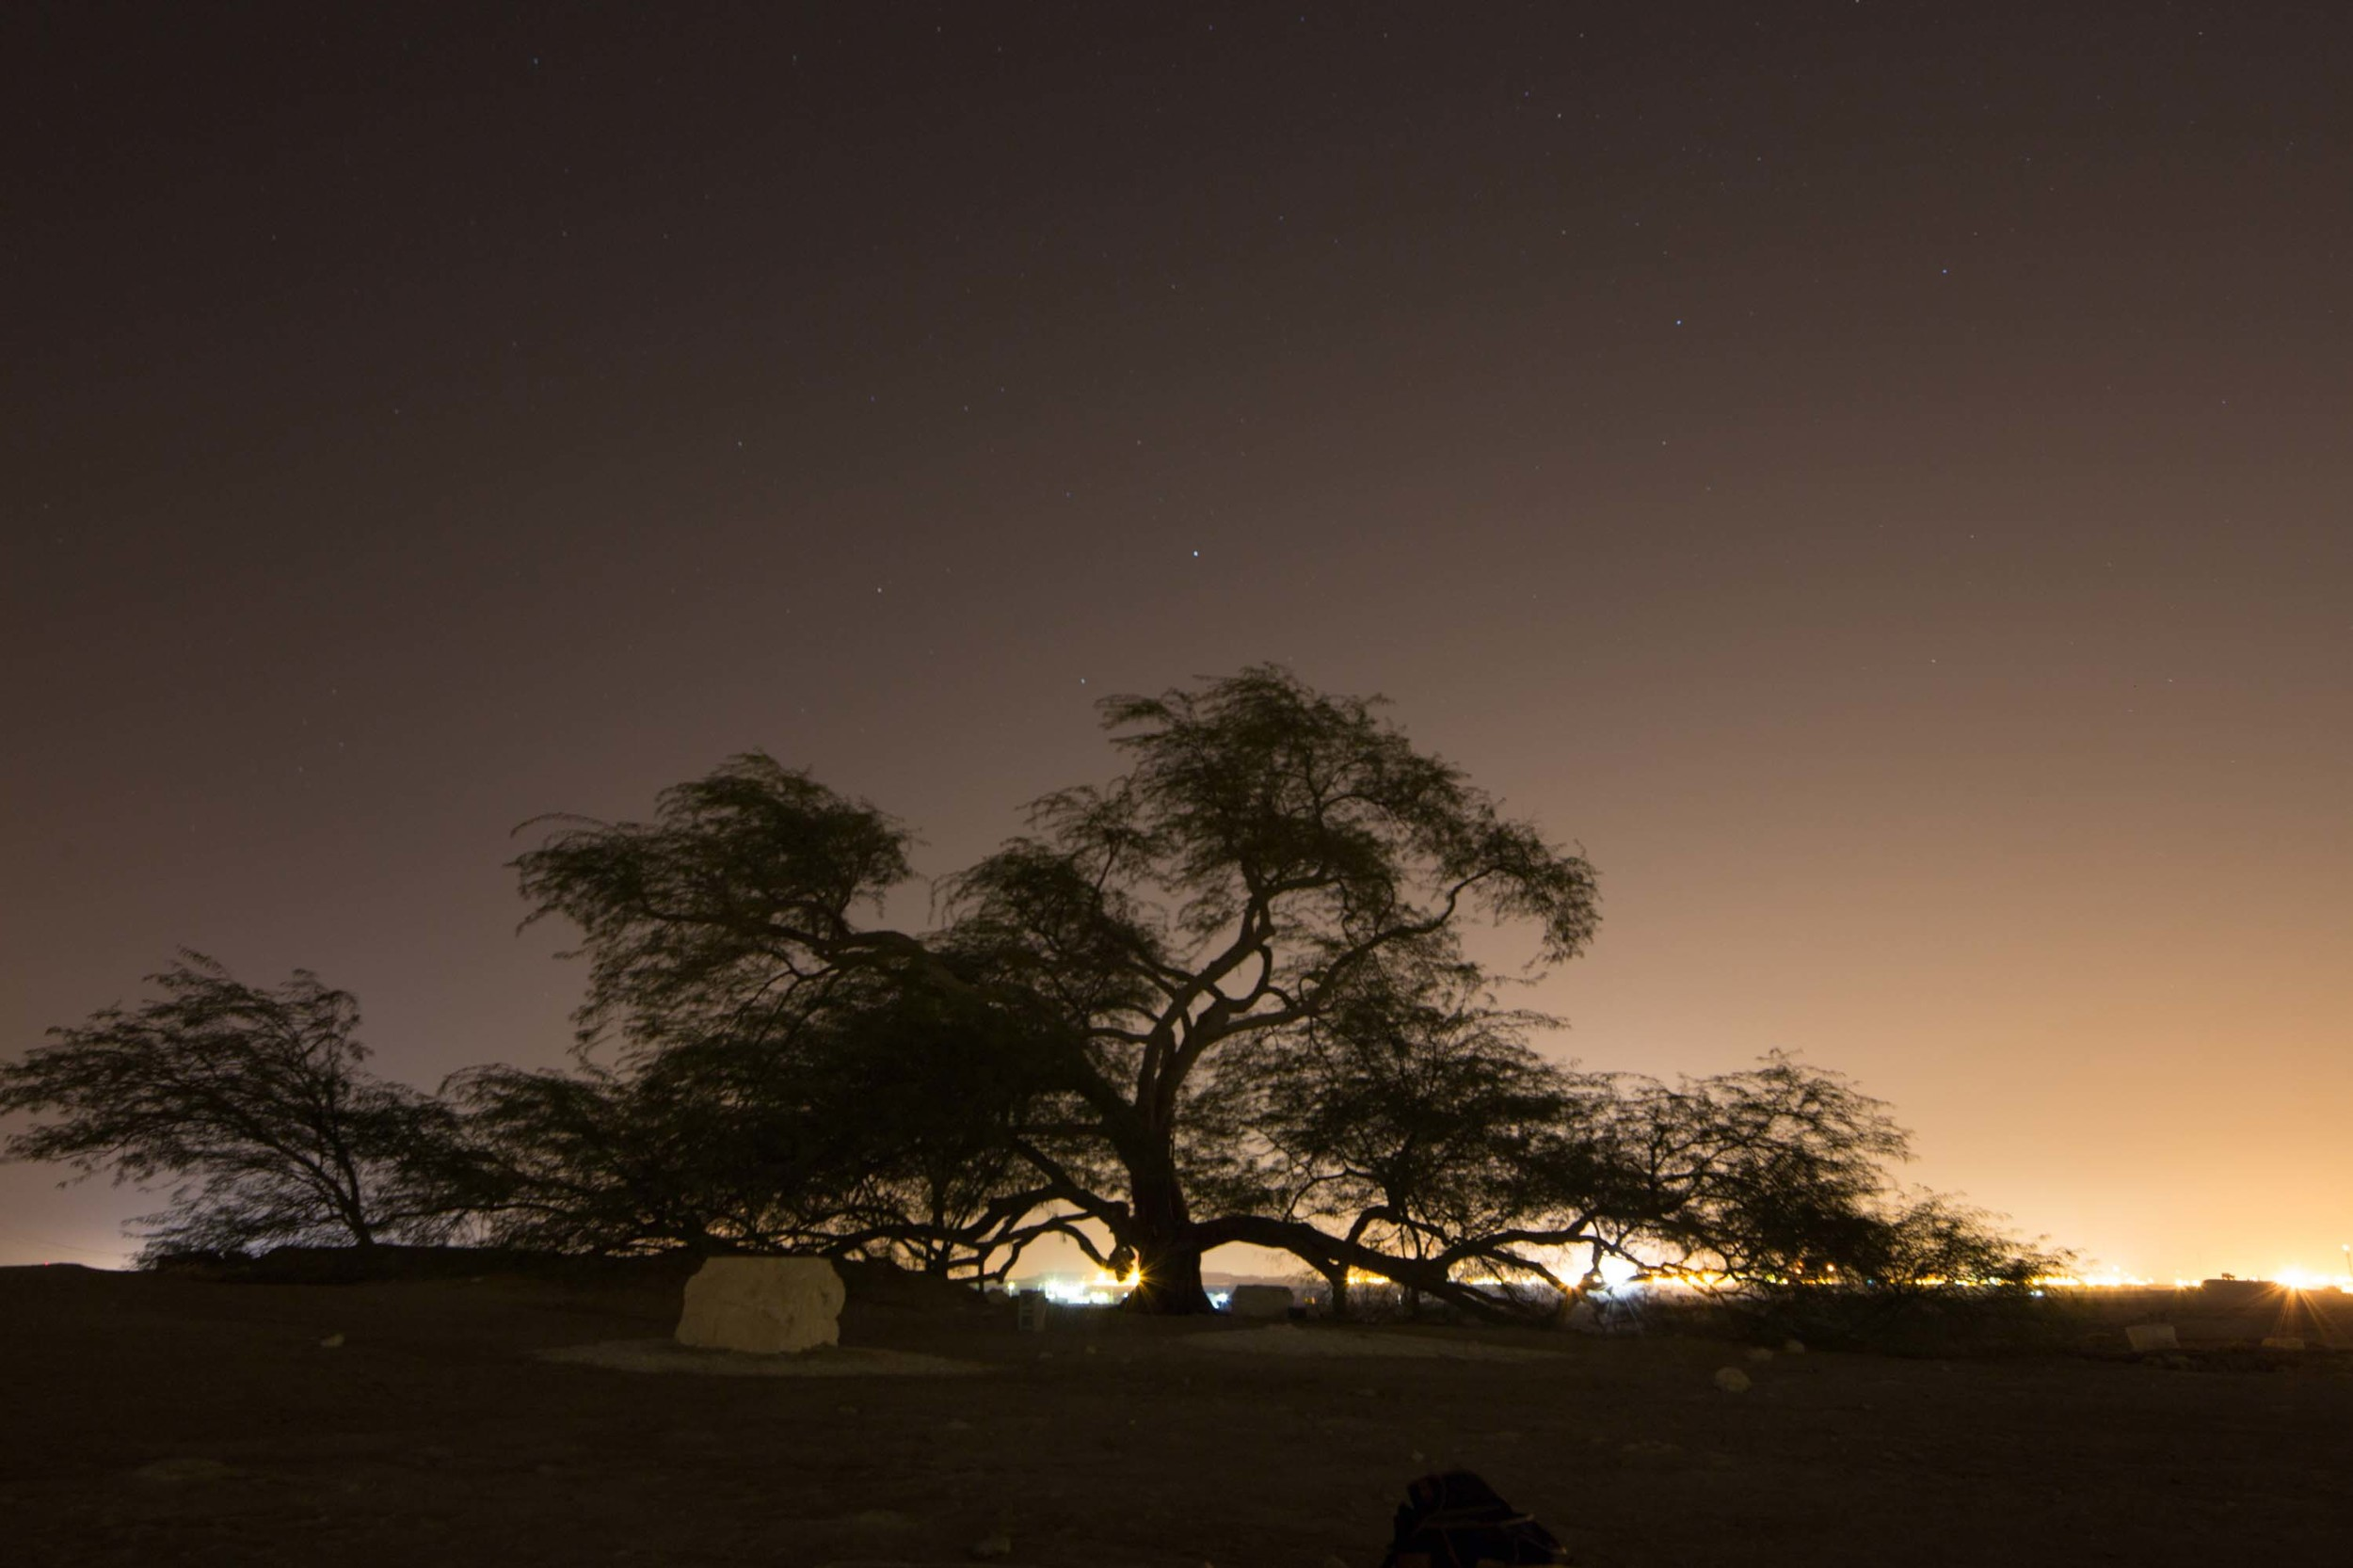 Long exposure allowed the tree to seem brighter than it actually was.